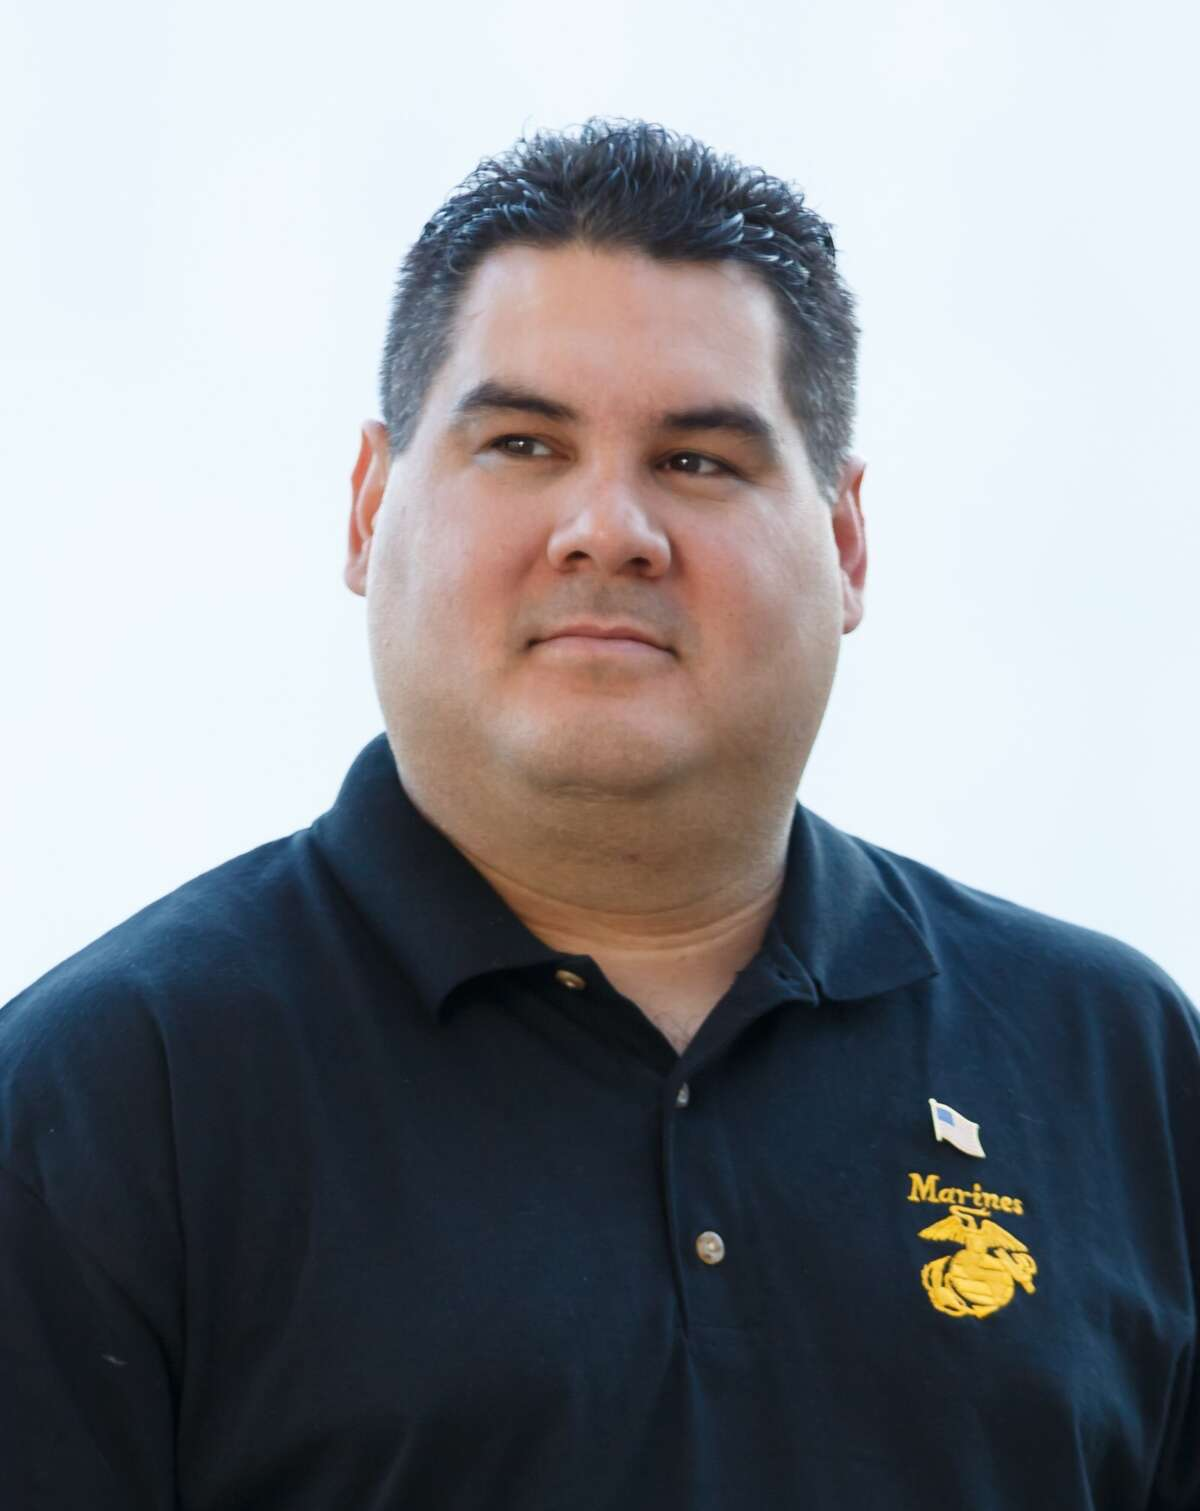 Augustine H. Reyes, candidate for U. S. Representative District 29.